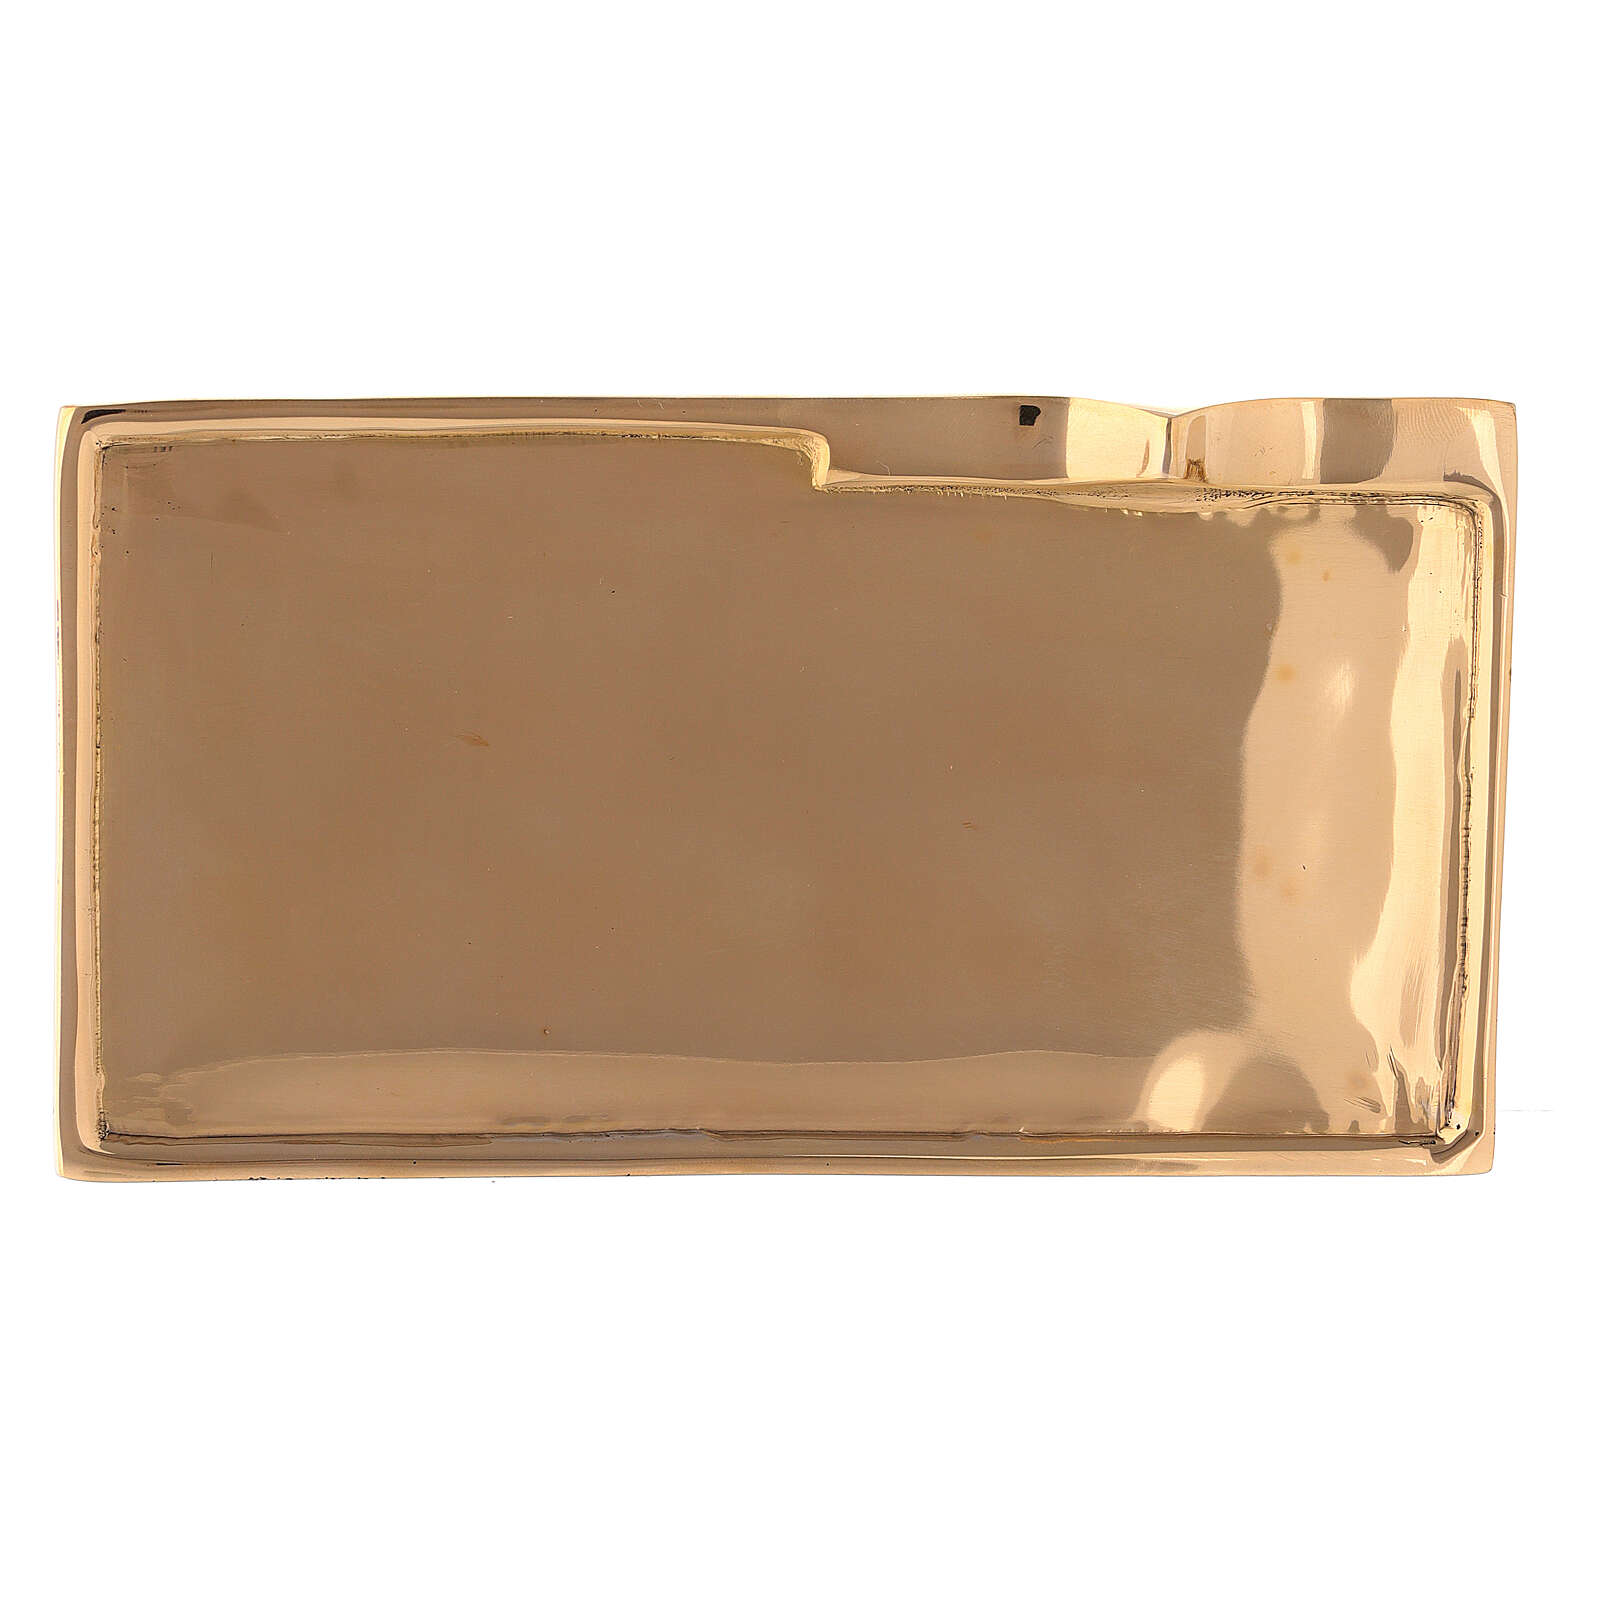 Rectangular candle holder plate gold plated brass 6x2 3/4 in 3